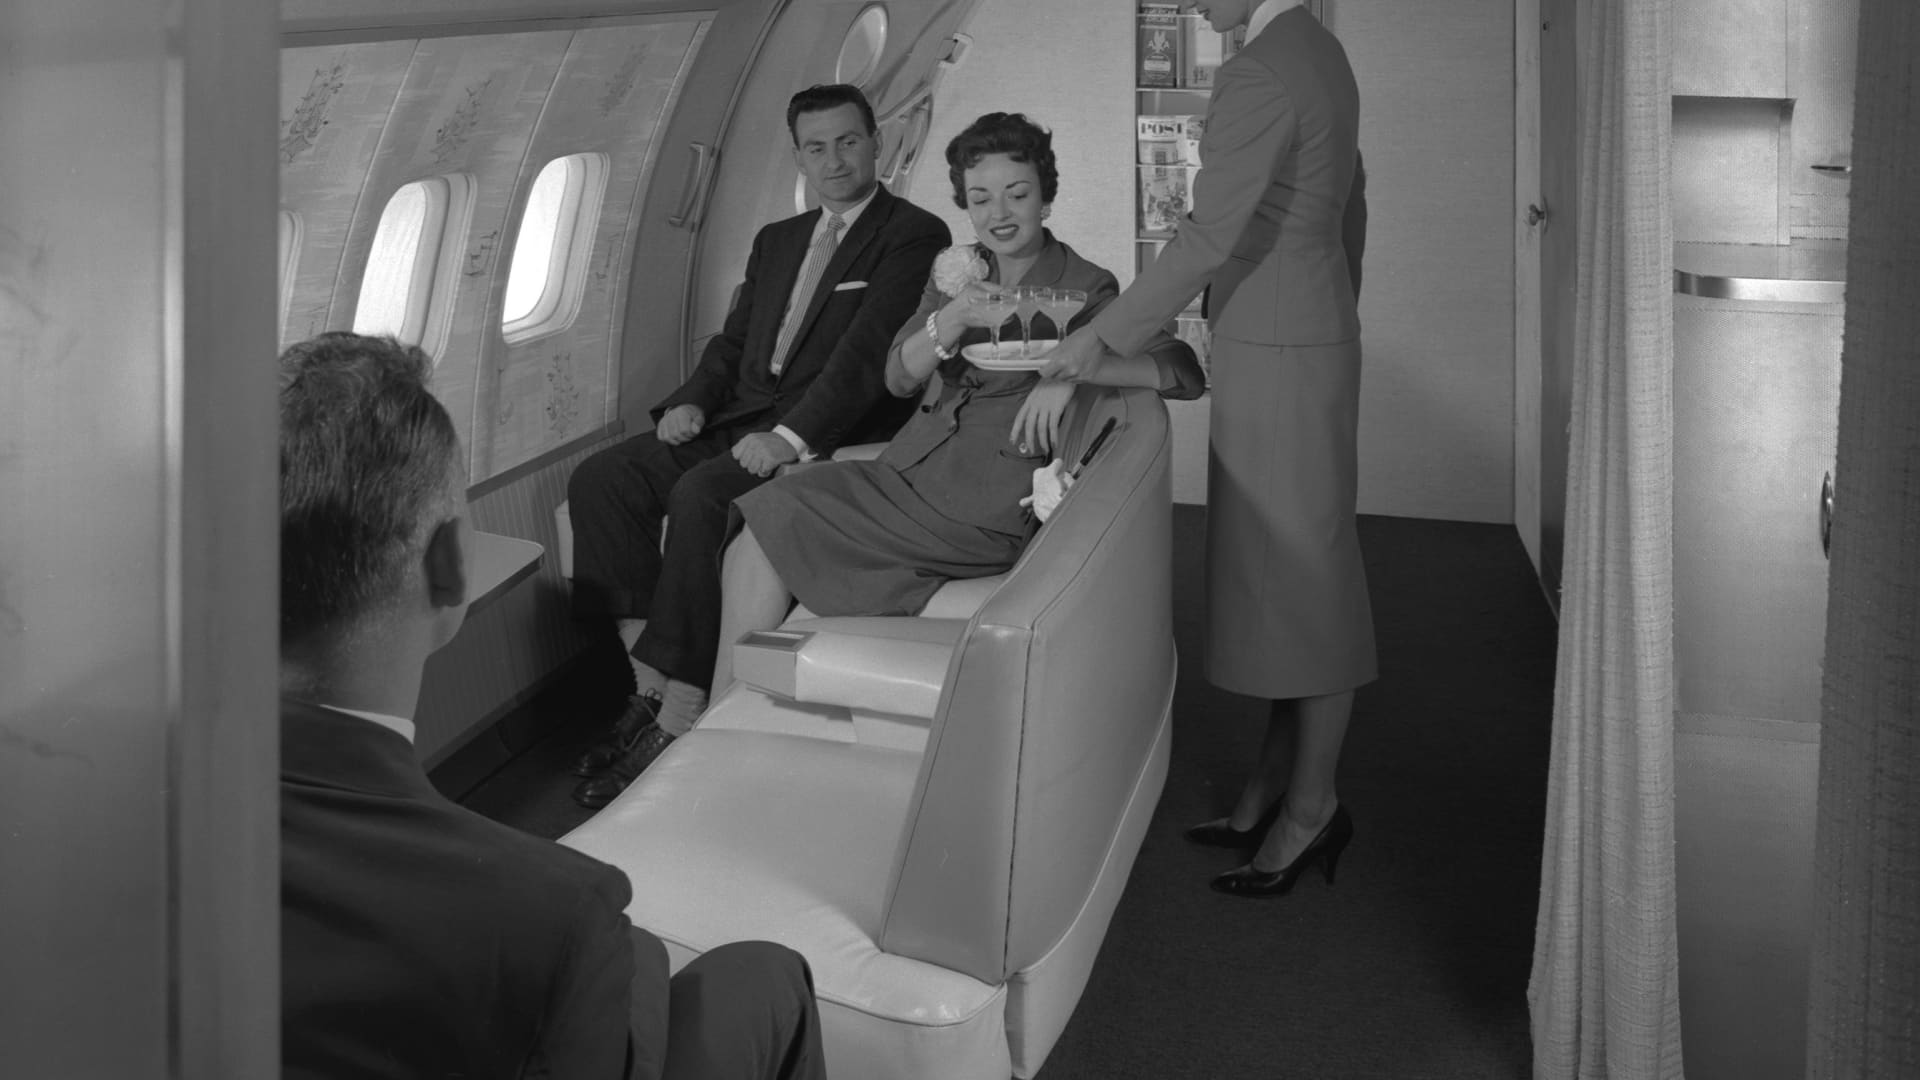 Passengers being served in the observation area of a Boeing 377 Stratocruiser.